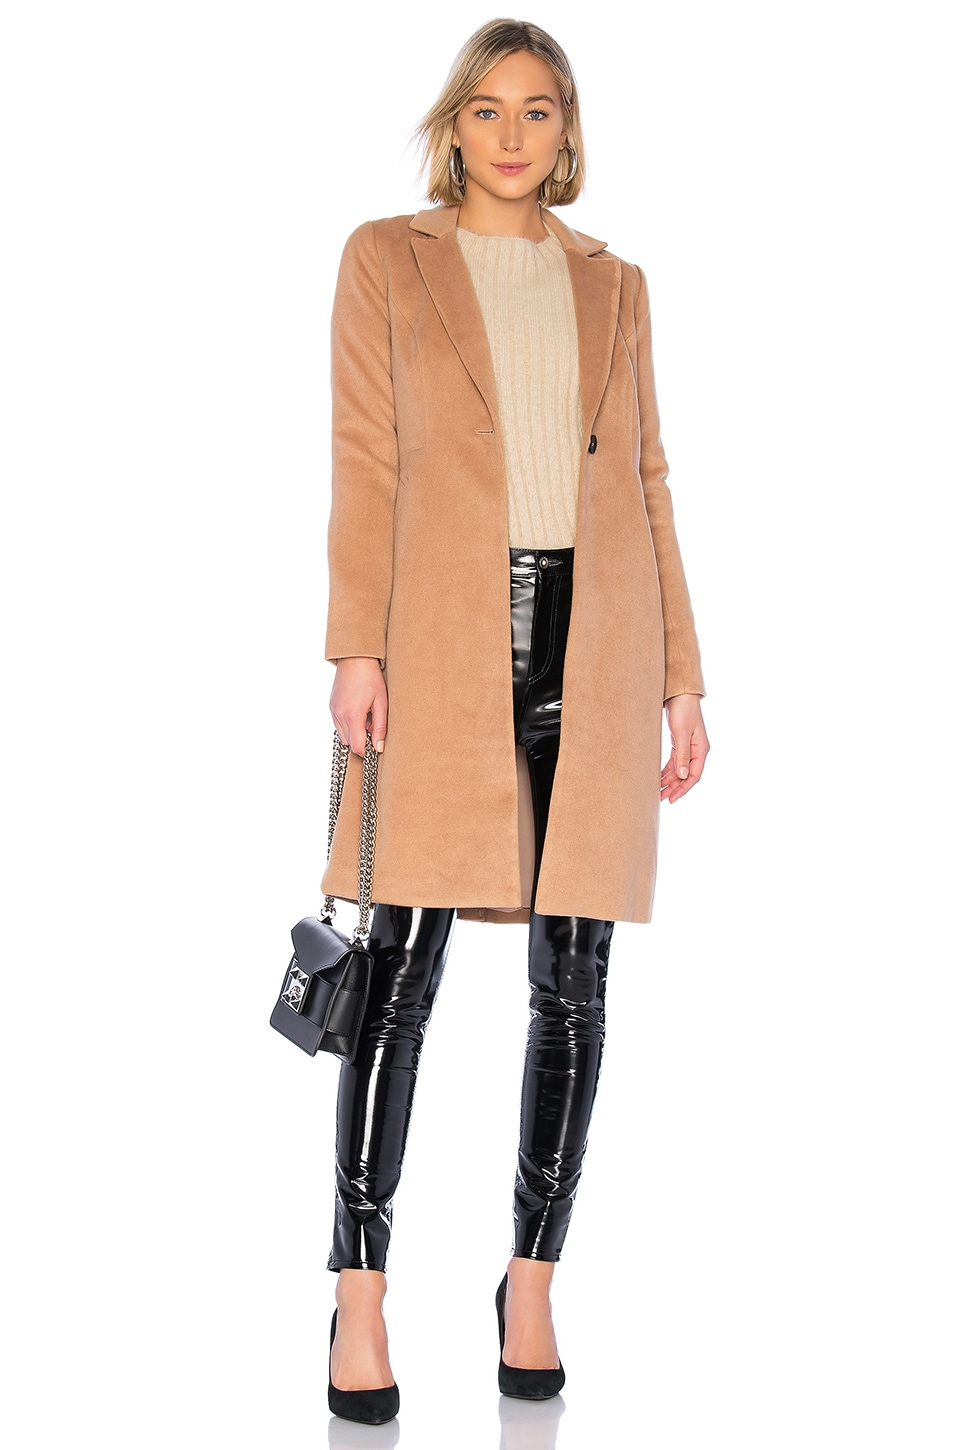 Lovers + Friends Storm Coat in Camel